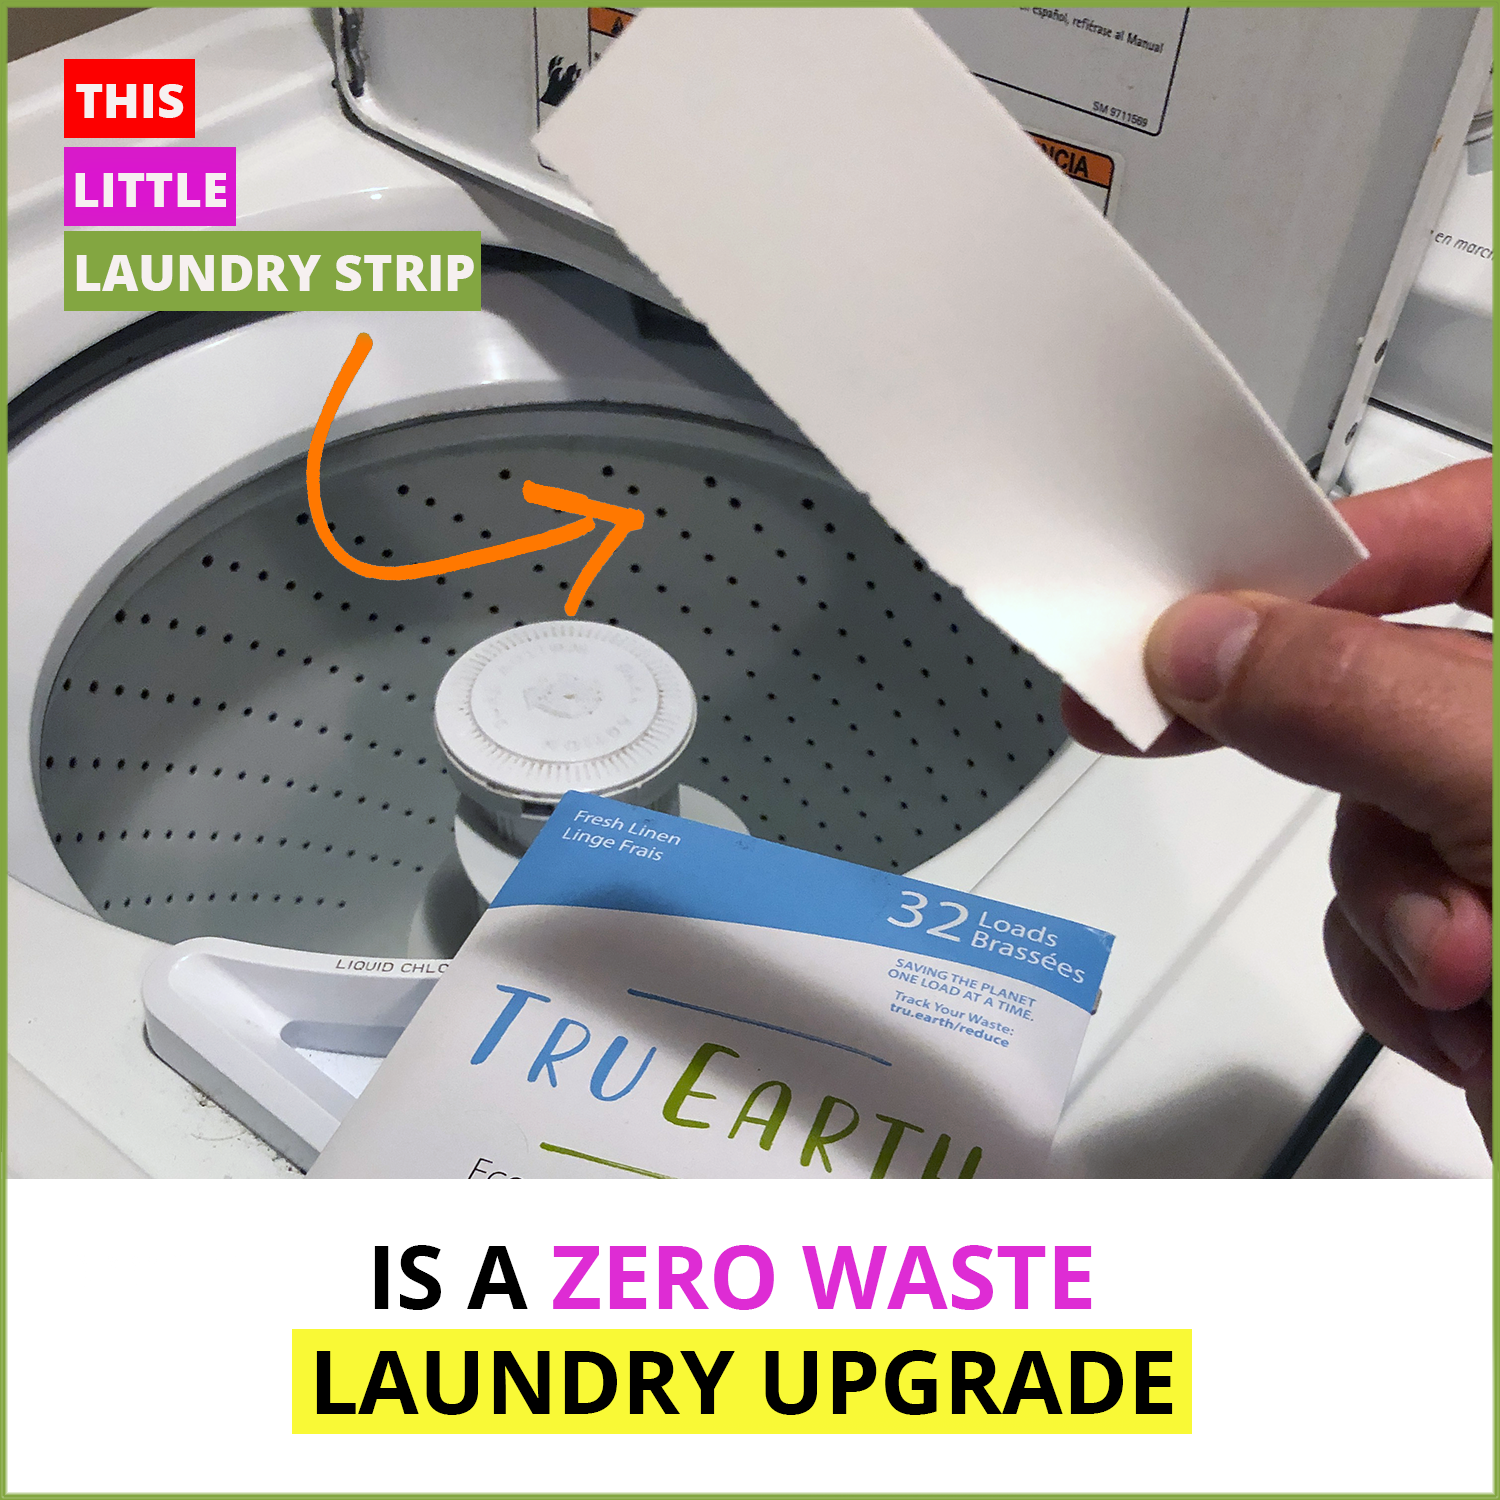 TRU EARTH - Laundry Detergent Eco Strips